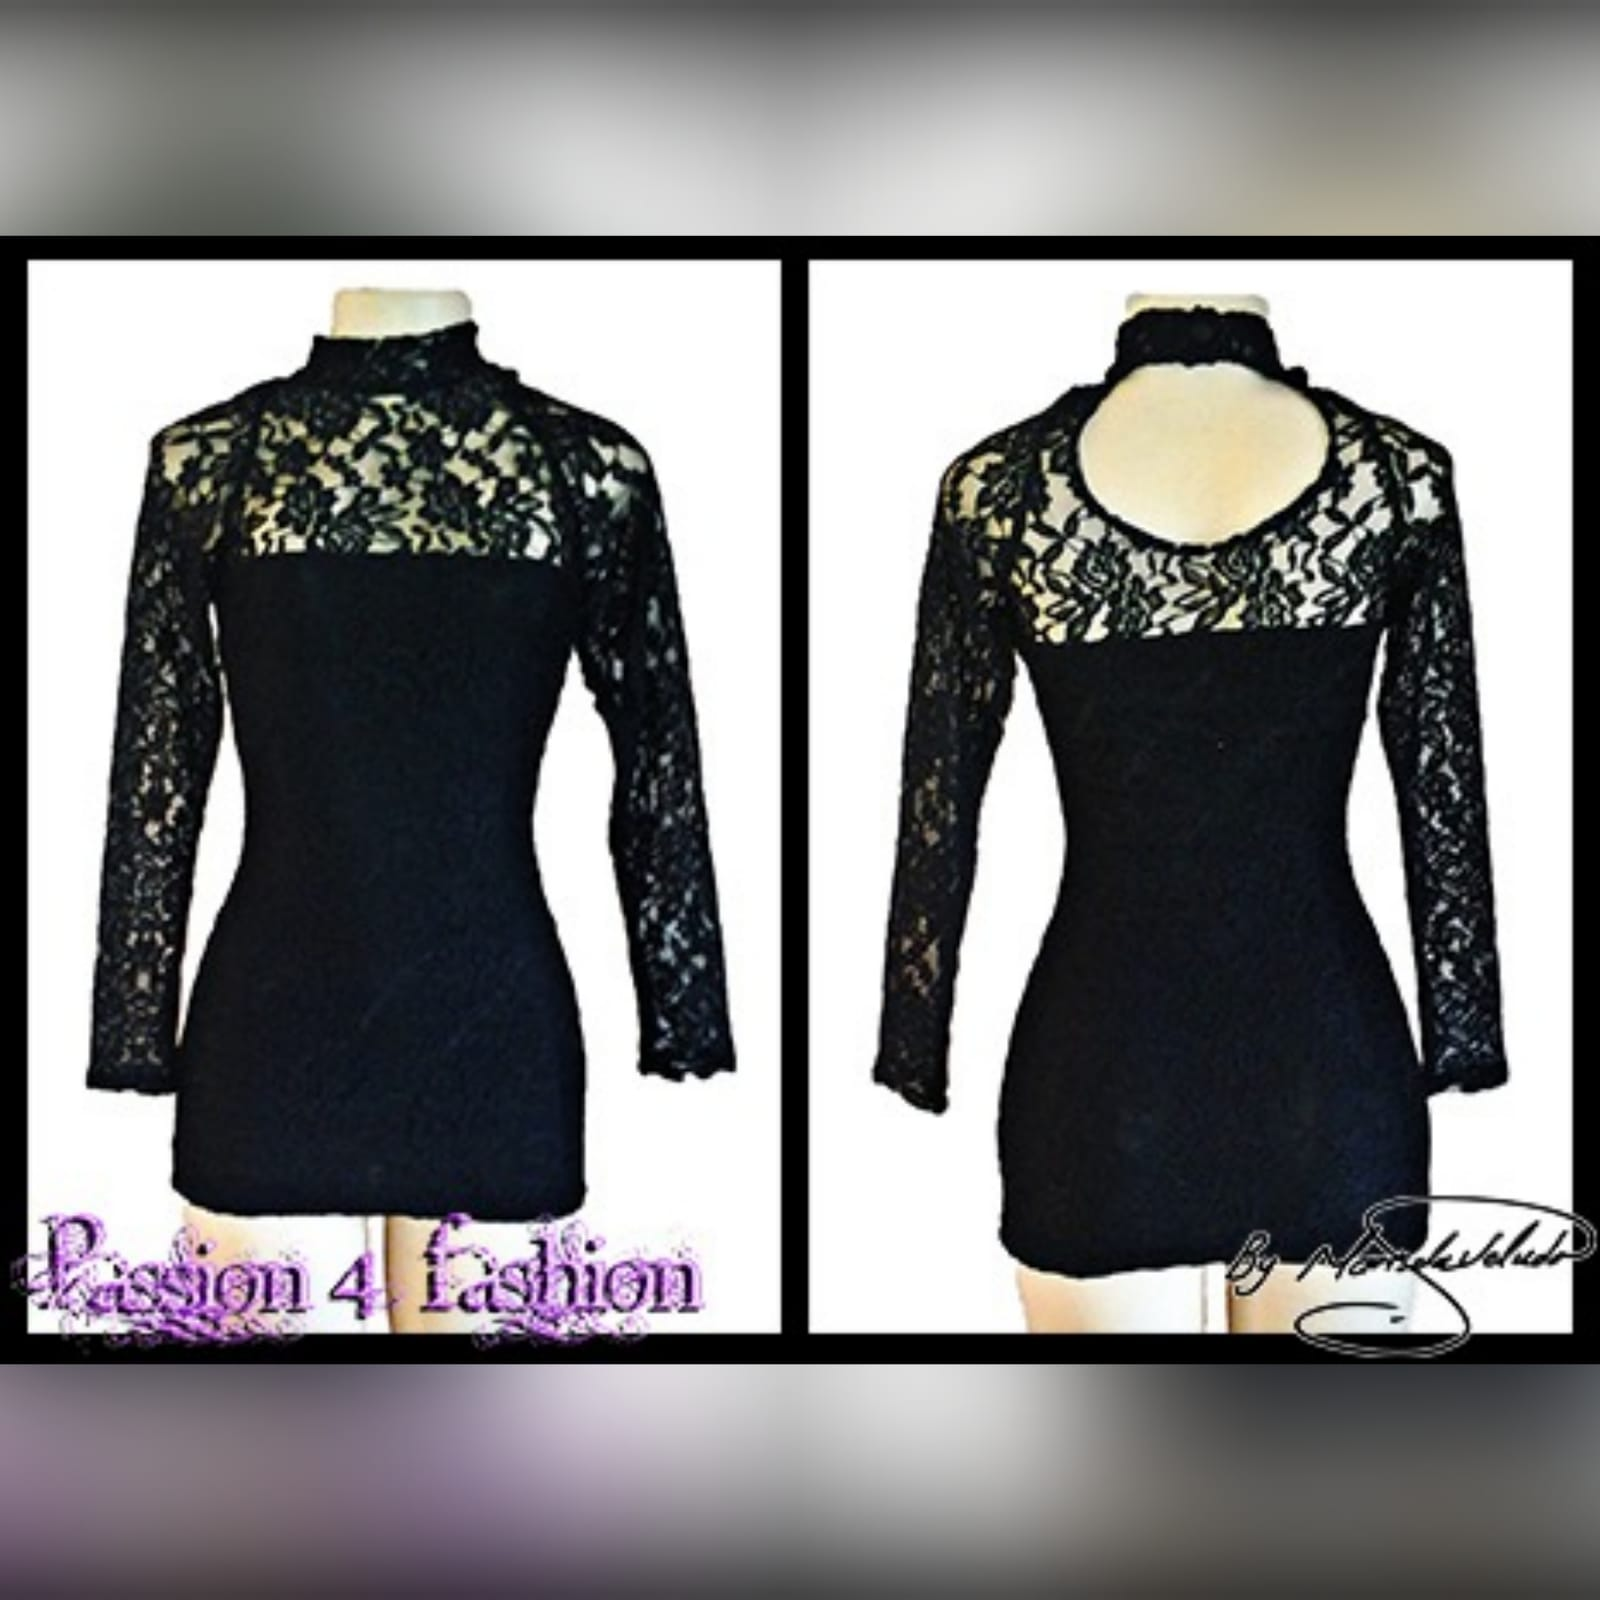 Mini lace black party dress 2 mini lace black party dress with a sheer choker neckline and long lace sleeves